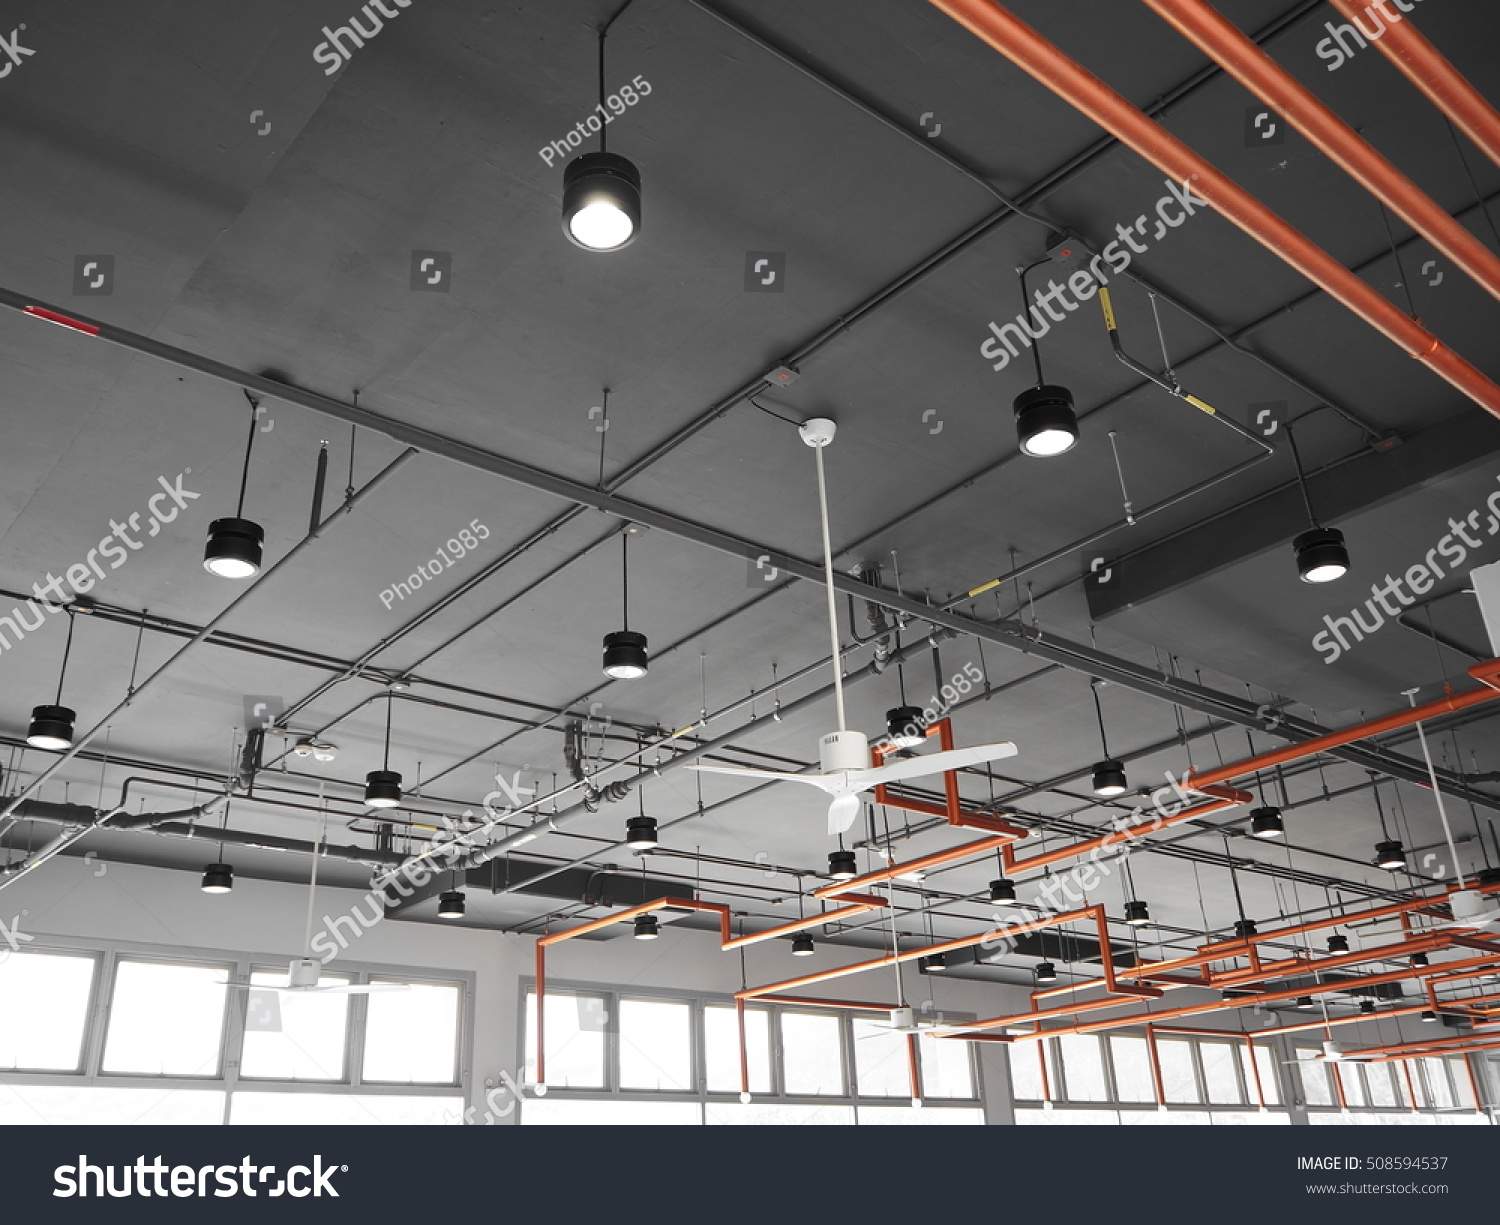 Array Newly Installed Electrical Conduits Stock Photo Edit Now Conduit Wiring Installing Metal How To Install Of